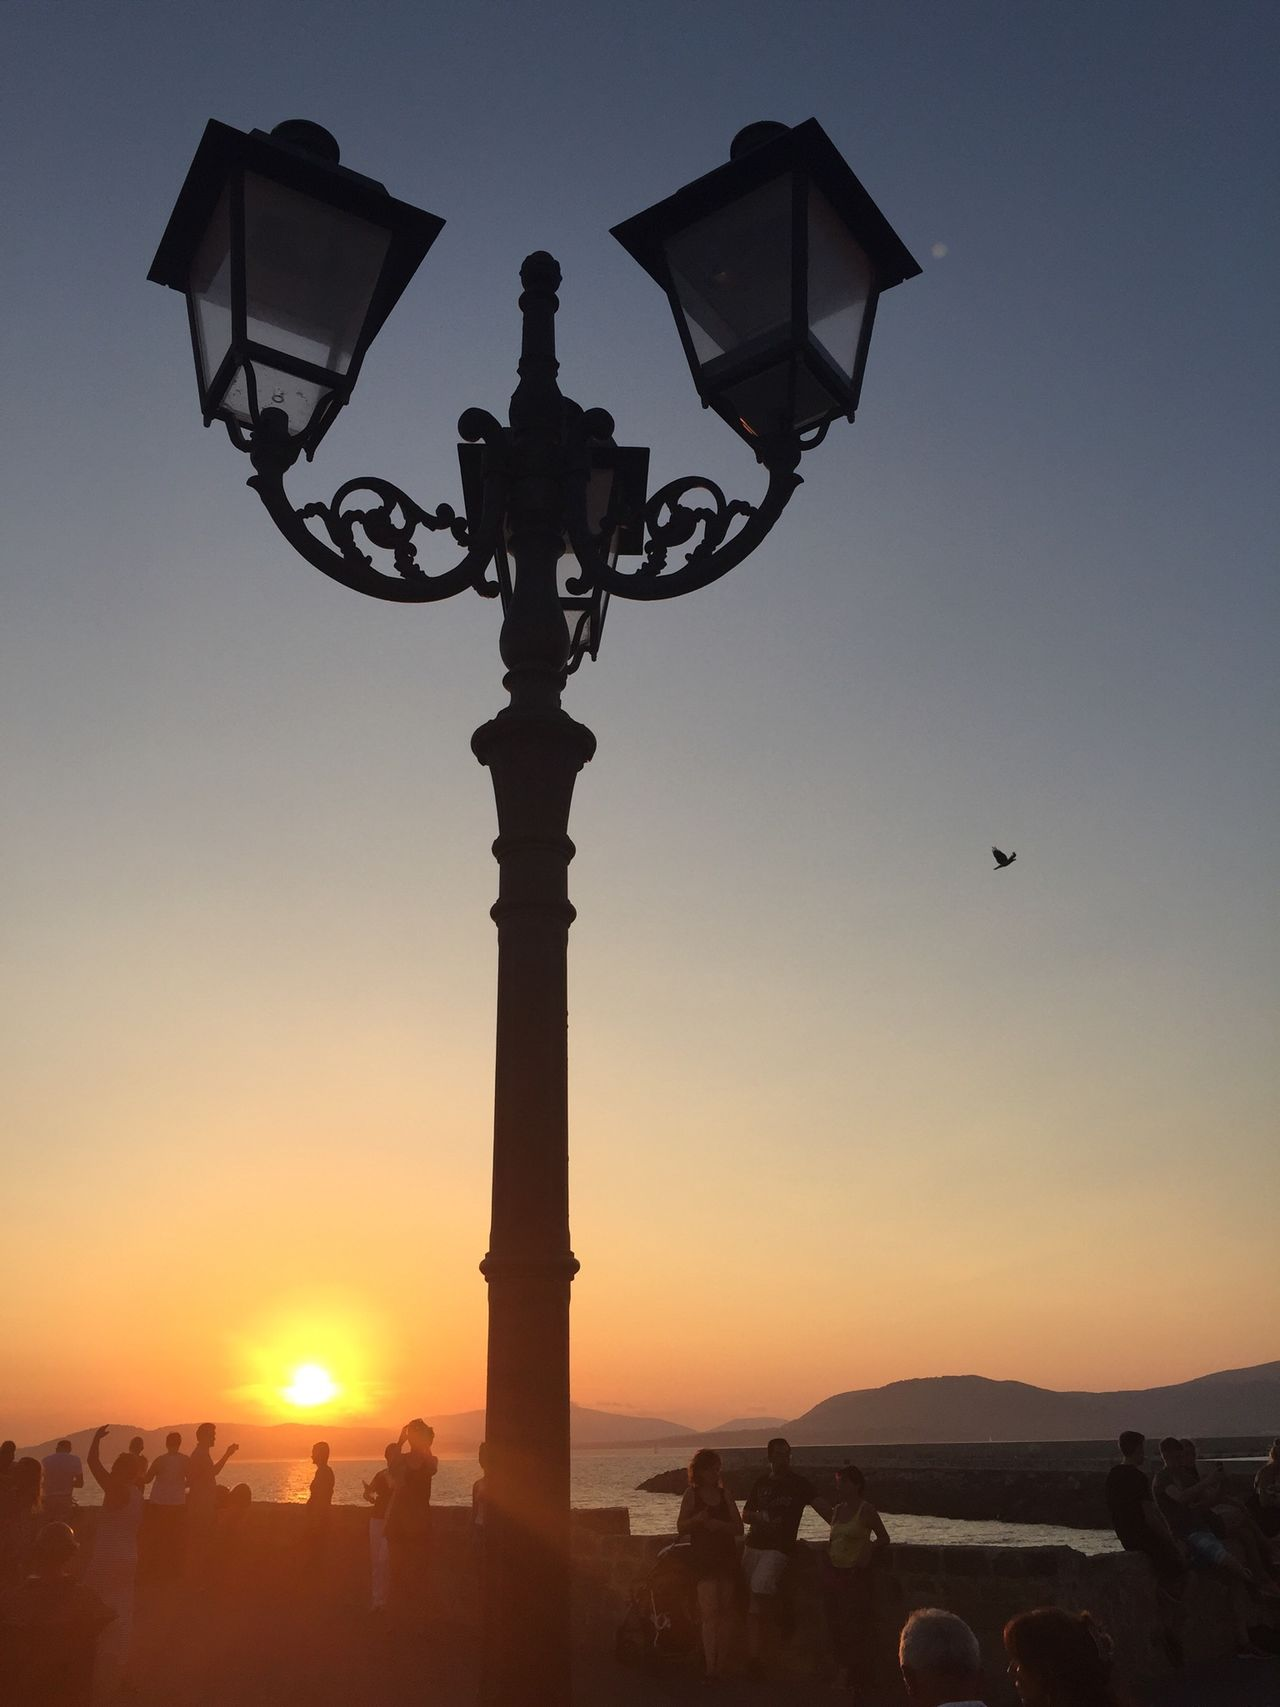 Sunset Dusk Sardinia By The Sea Sea Lantern Lamp Post Street Light Holiday Beautiful Sky Sun Down Sunset Over Sea Orange Sun Learn & Shoot: After Dark Italy Scenery Landscape Alghero Bird In Flight Yellow Sun People Watching Sunset